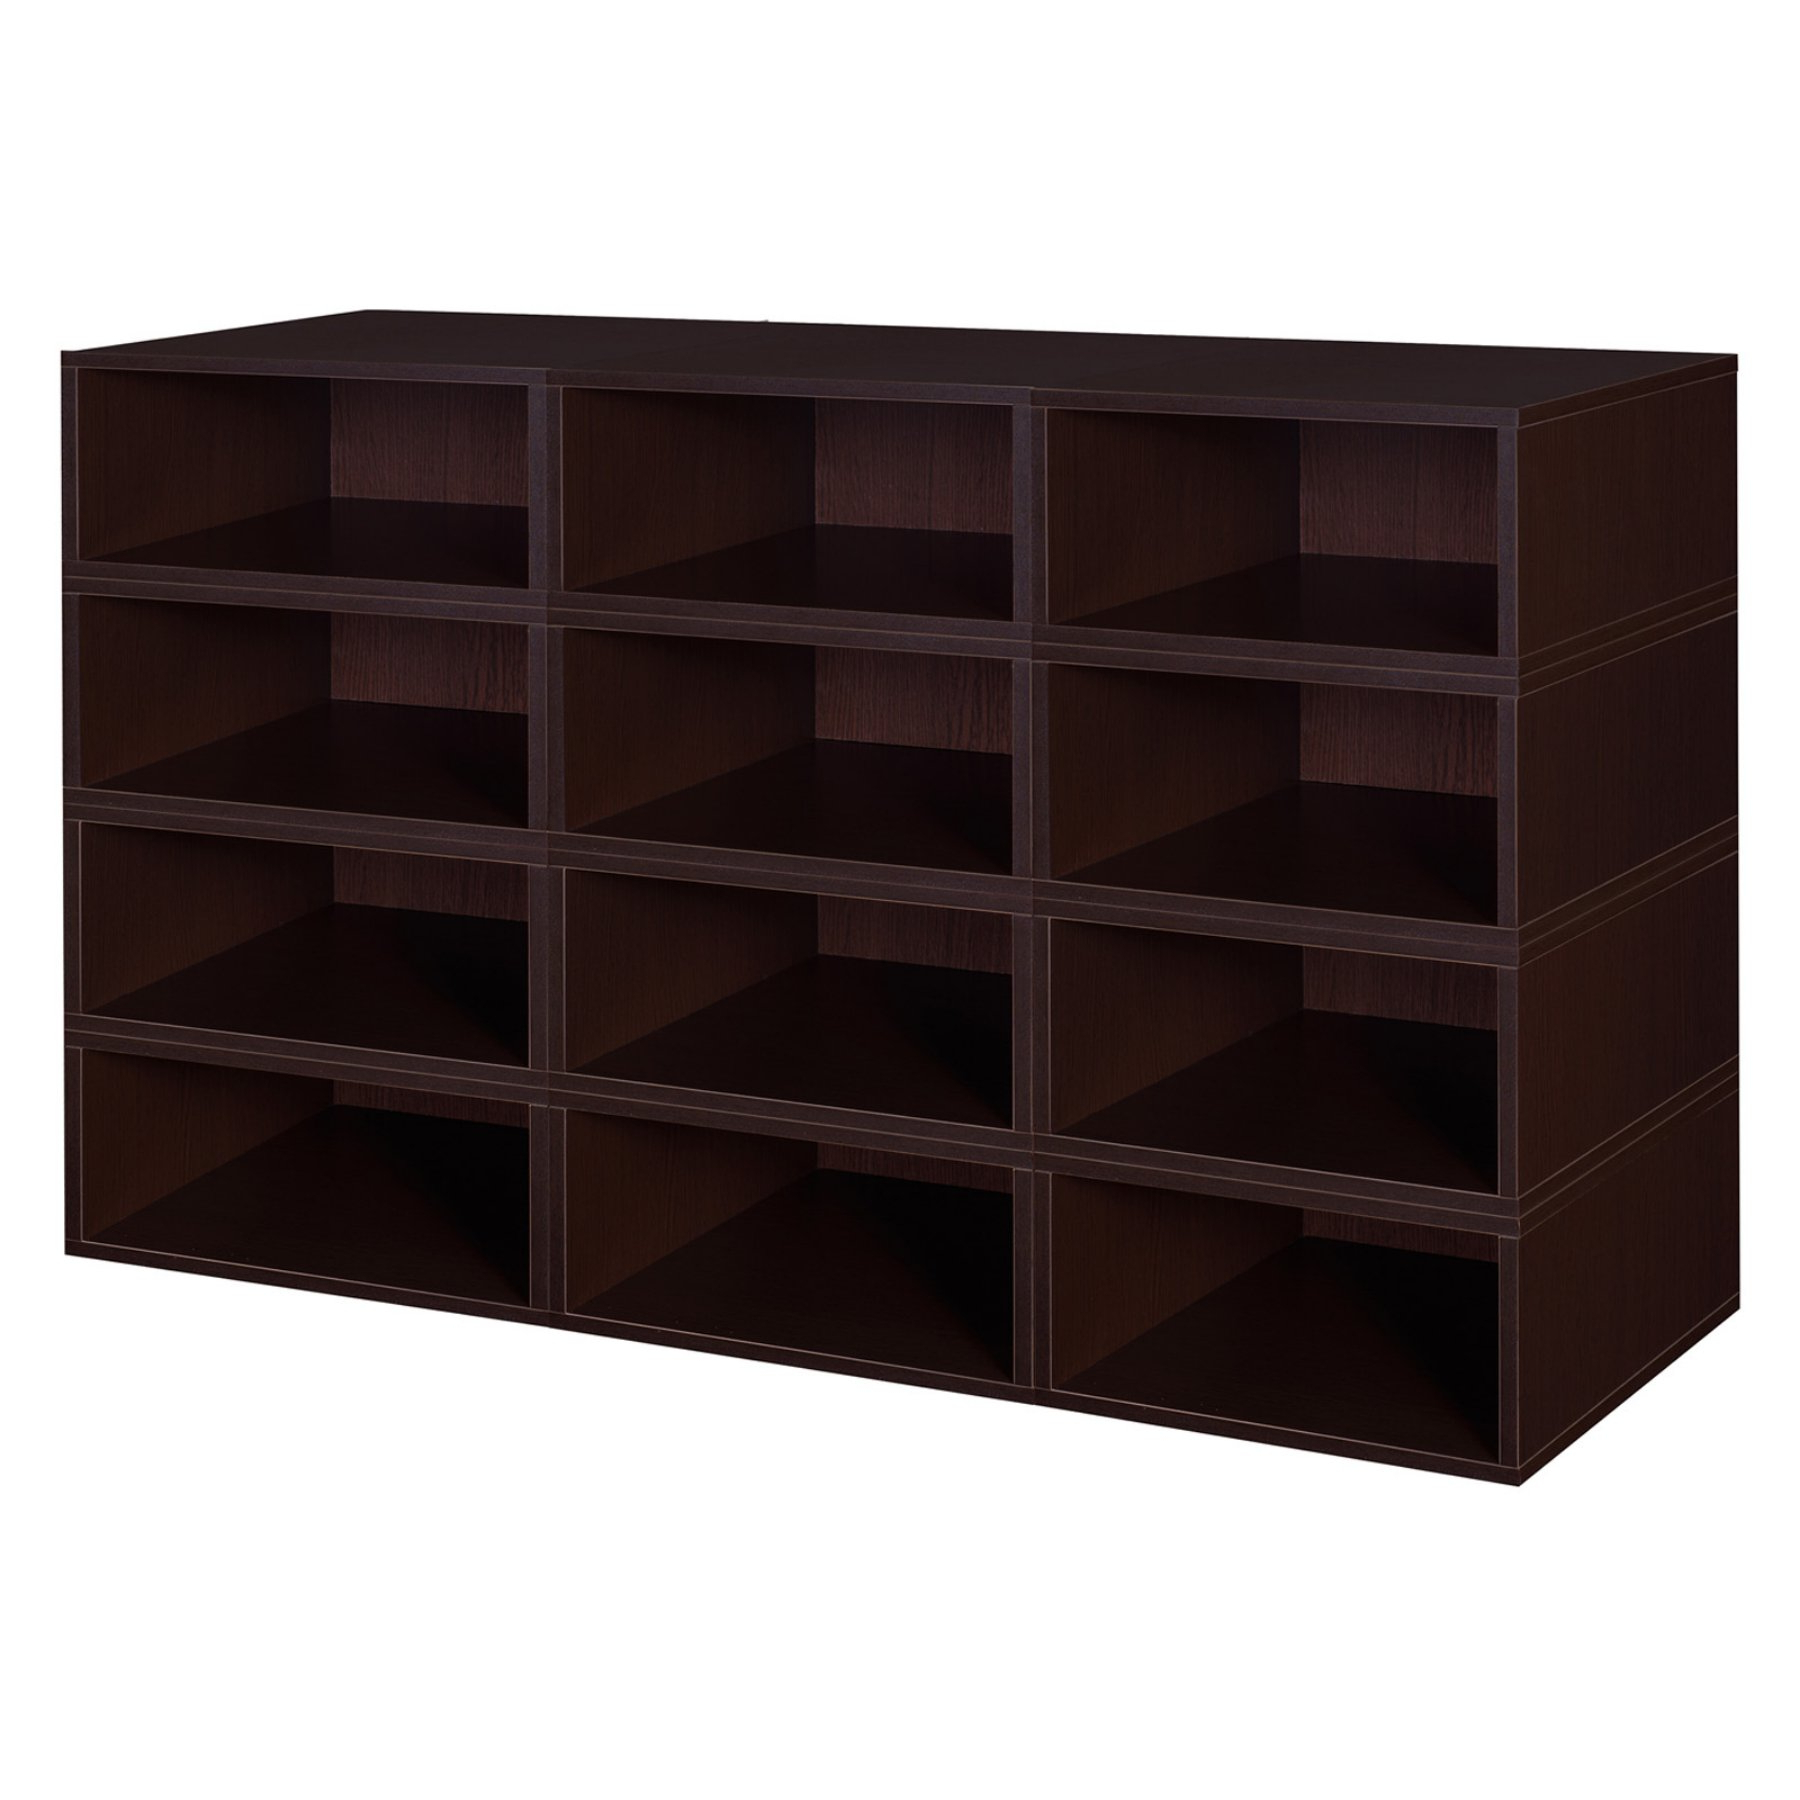 Niche Cubo Storage Set – 12 Half Size Cubes – Pc0612pktf For Newest Chastain Storage Cube Unit Bookcases (Gallery 11 of 20)